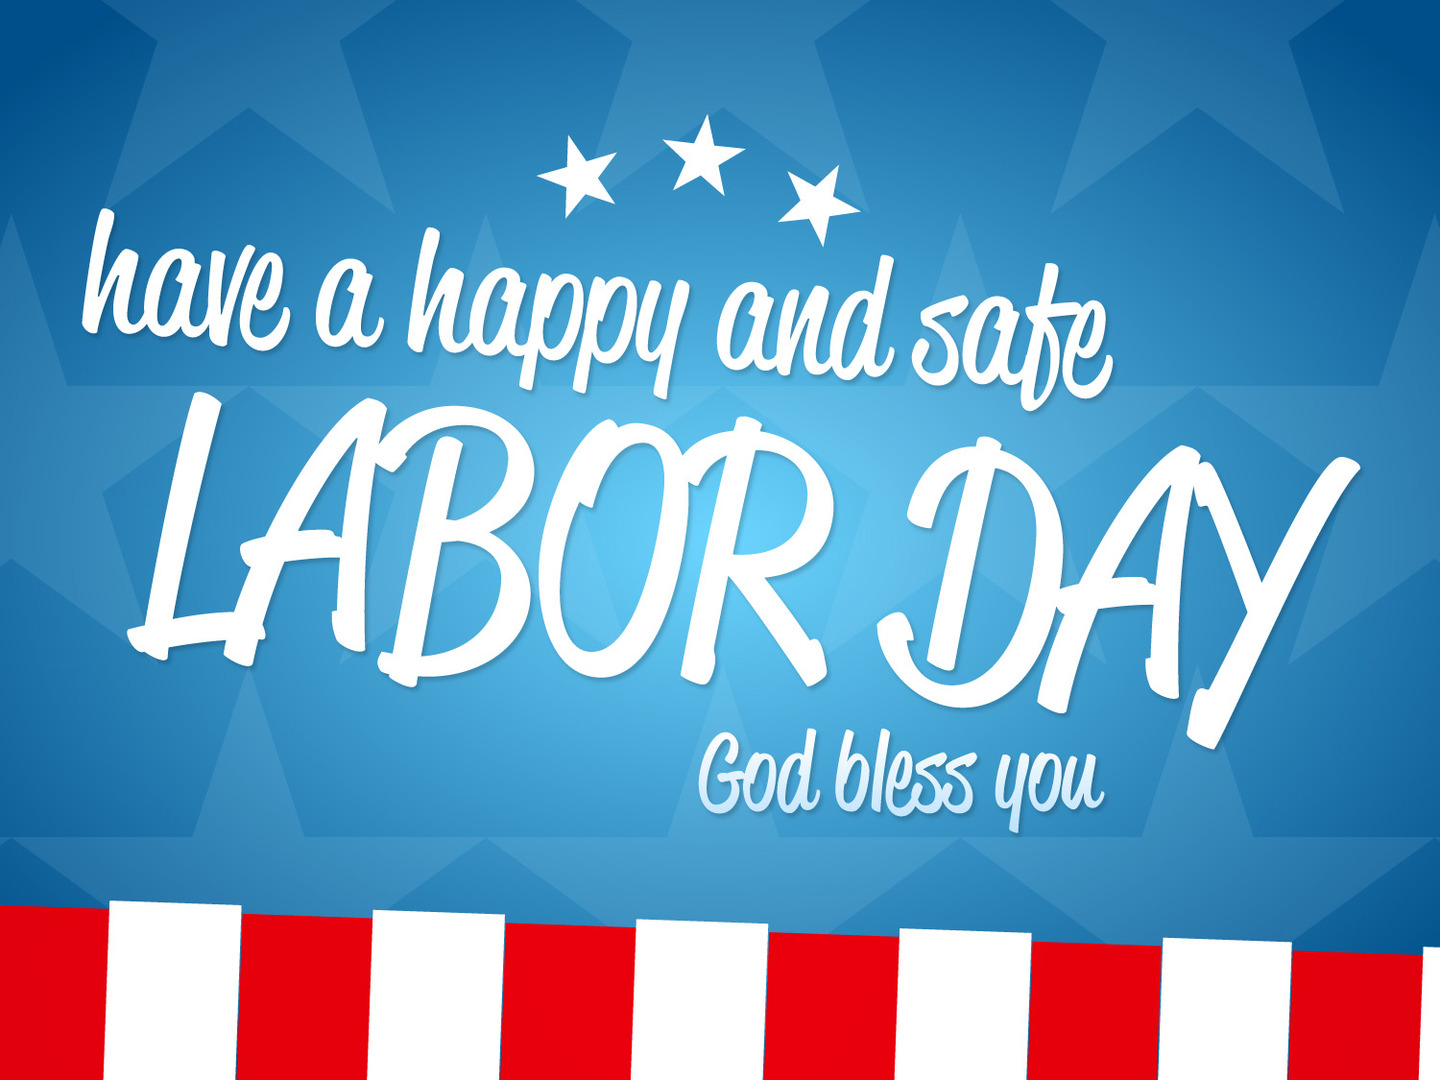 have_a_happy_and_safe_labor_day-title-1-Standard 4x3.jpg